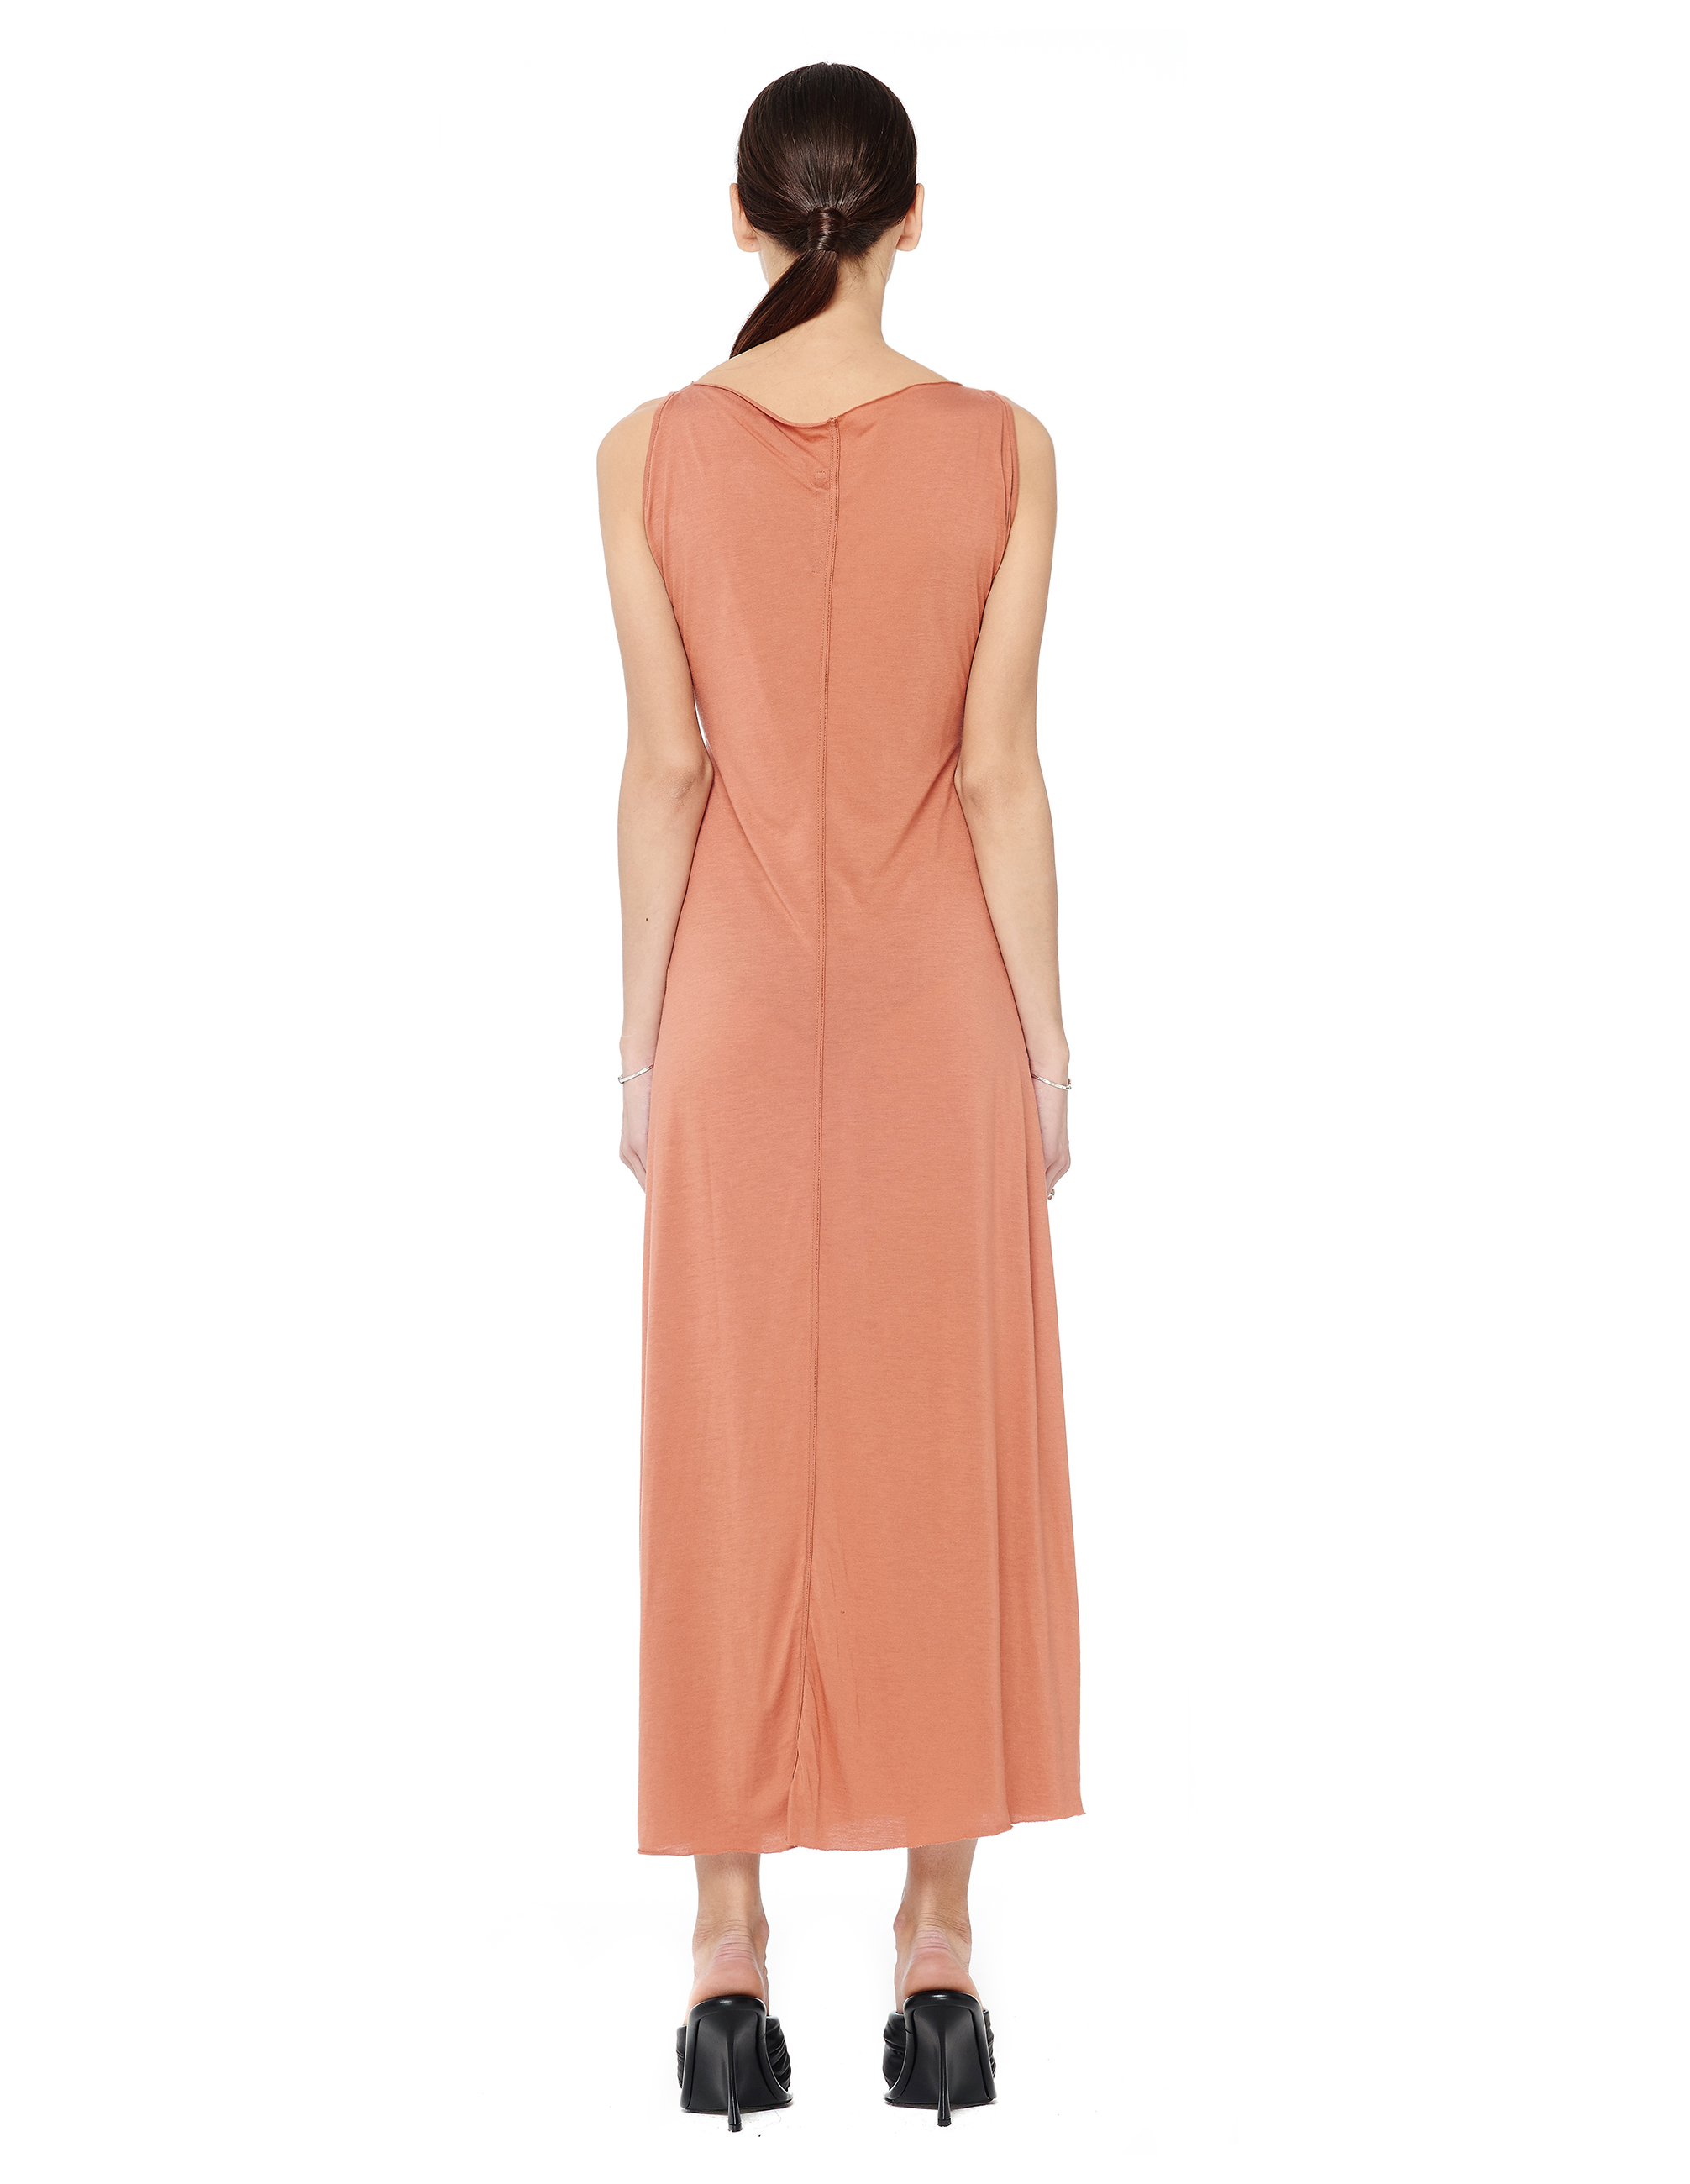 Rayon and cotton dress Rick Owens Lilies (photo)